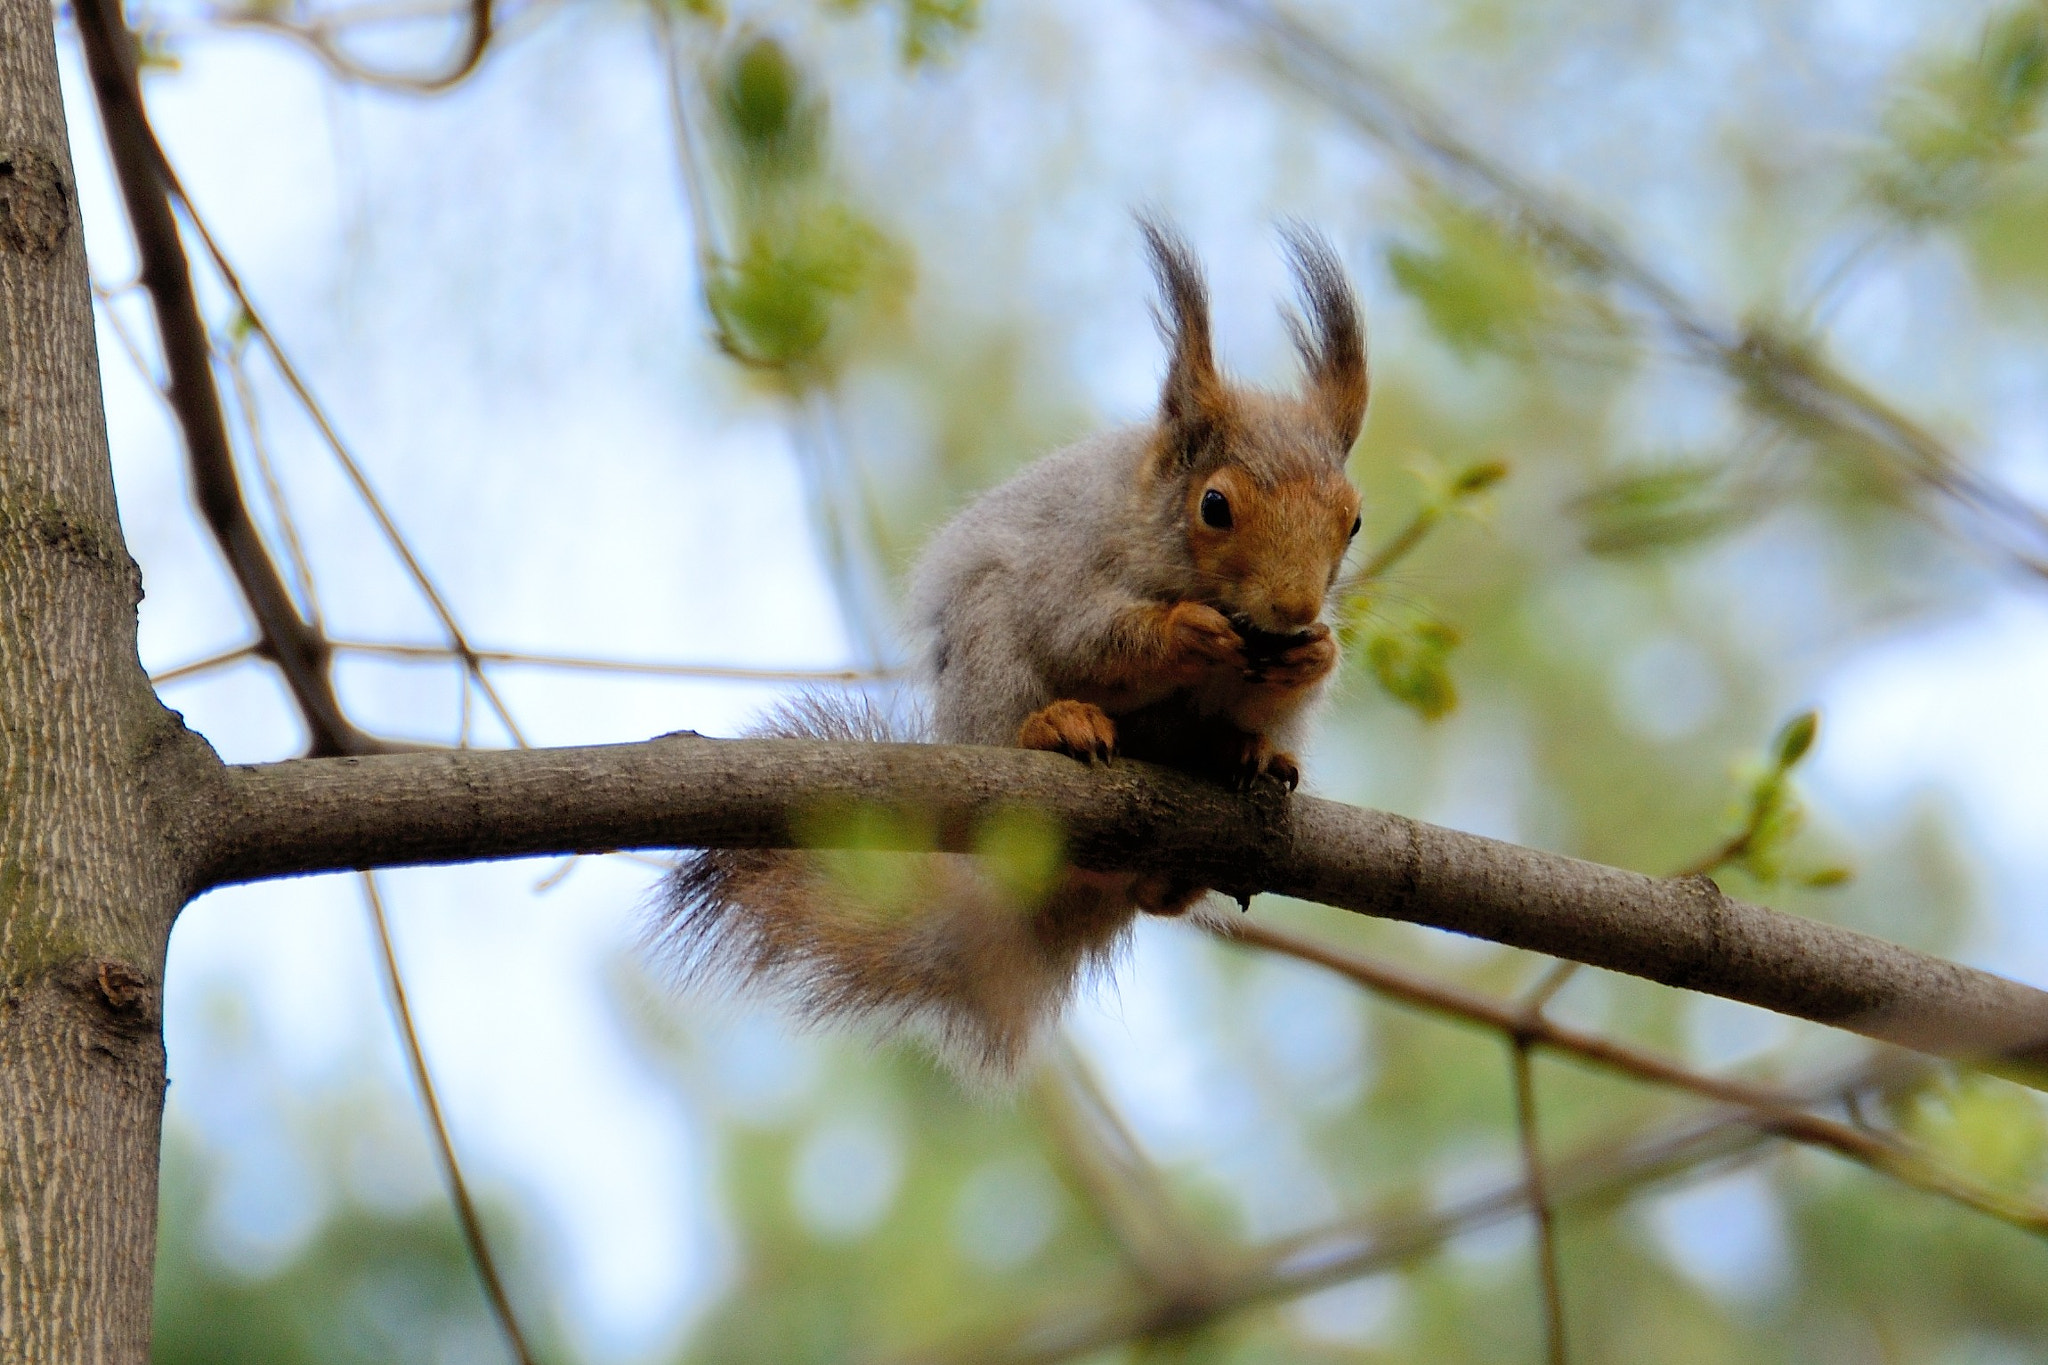 Photograph Squirrel by Alexander Zhegalov on 500px